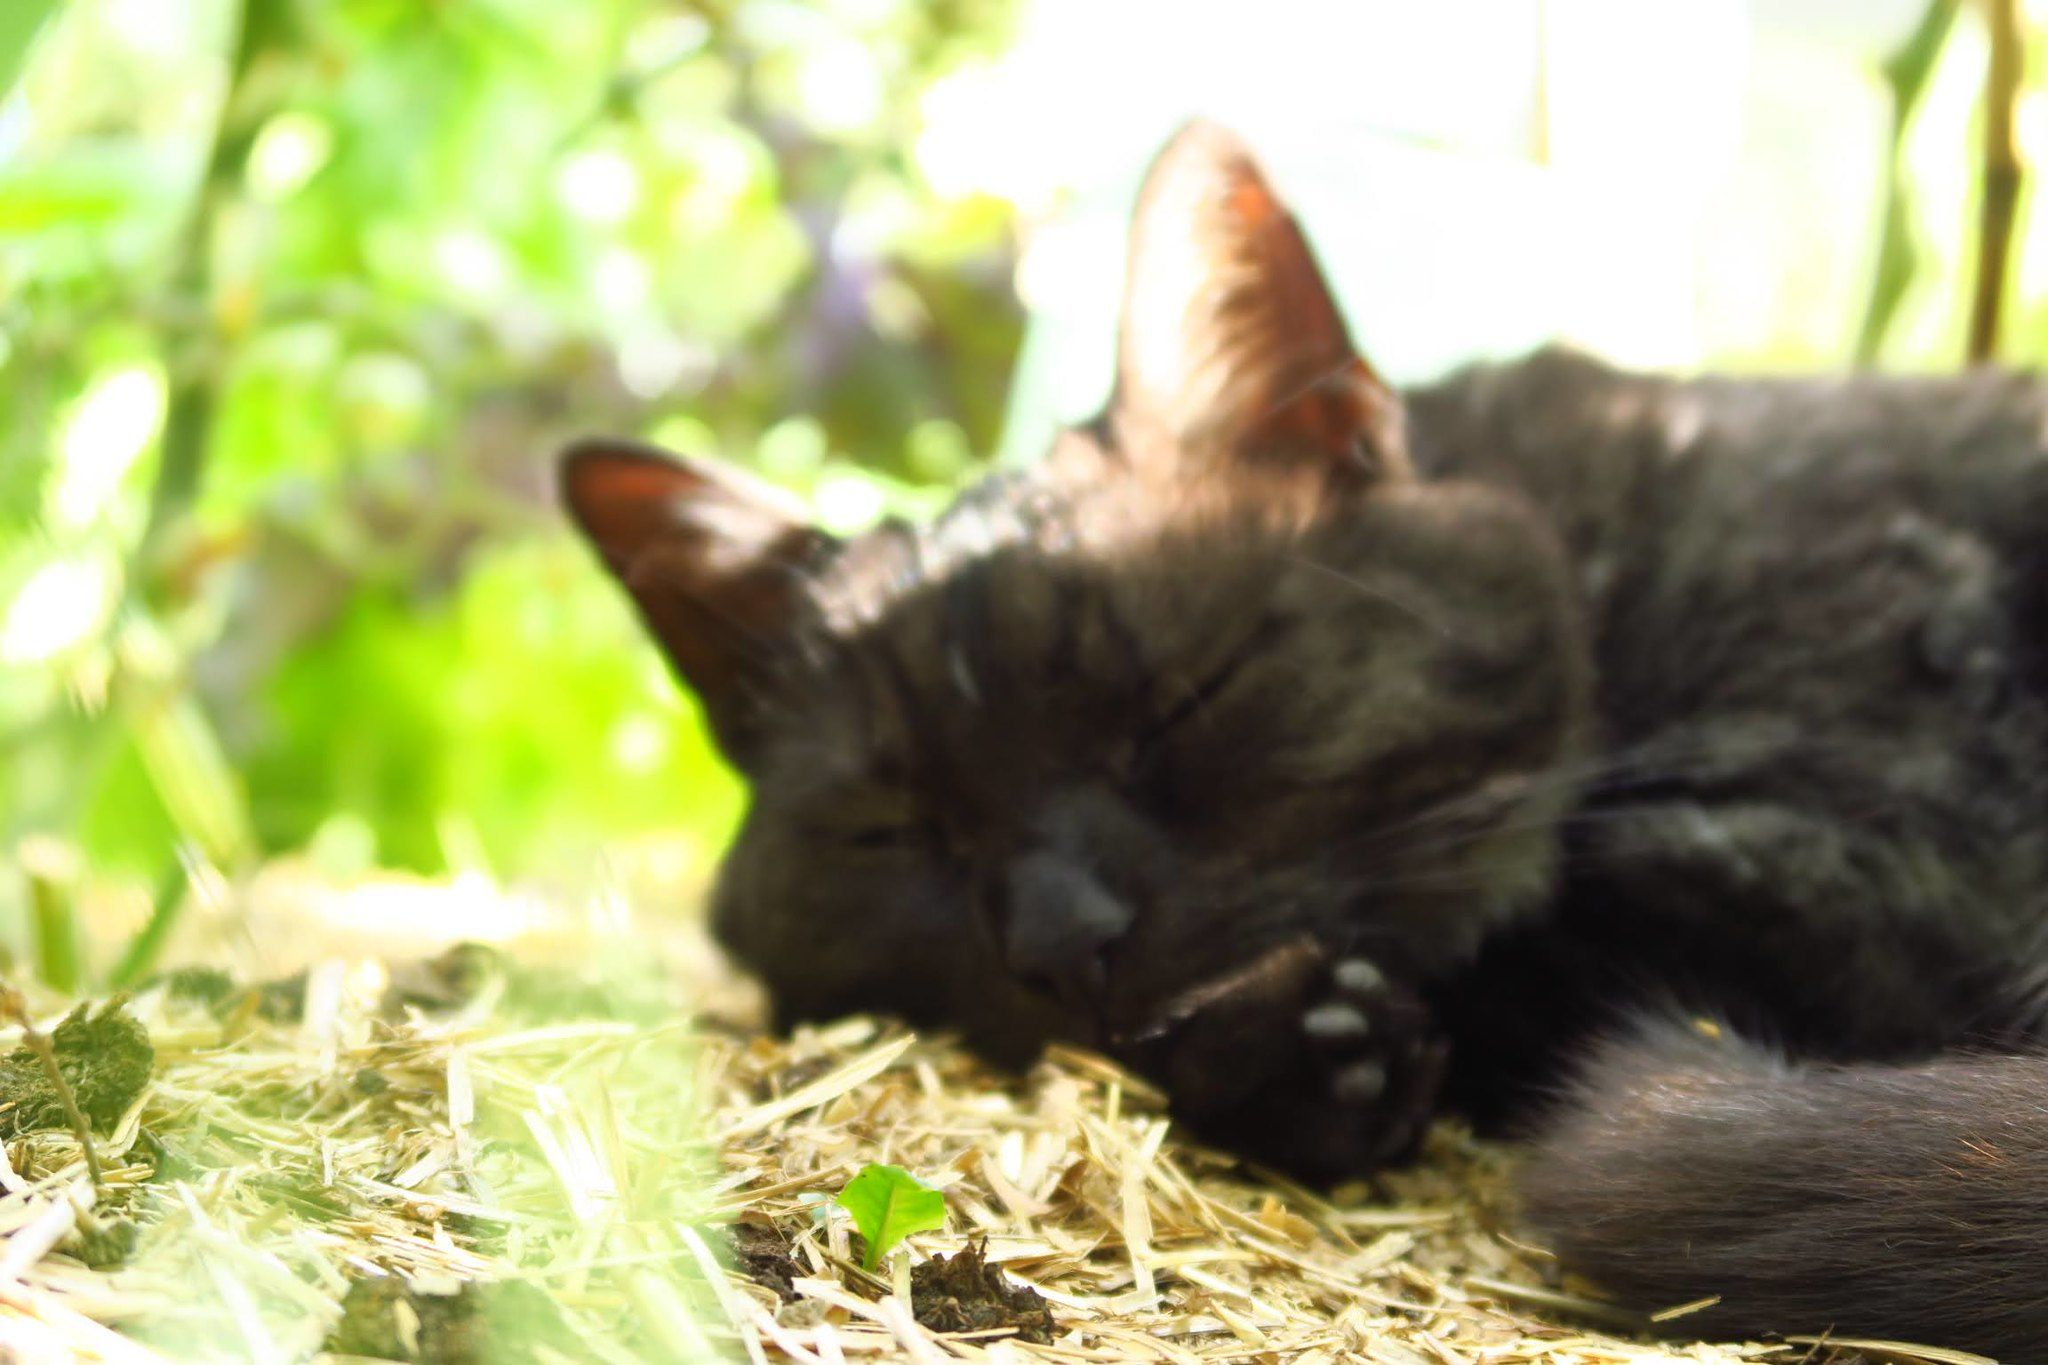 #chat #chatnoir #blackcat #dodo #sleepingcat #cute #cosy #outside #nature #garden #plant #gardenlover #catlover